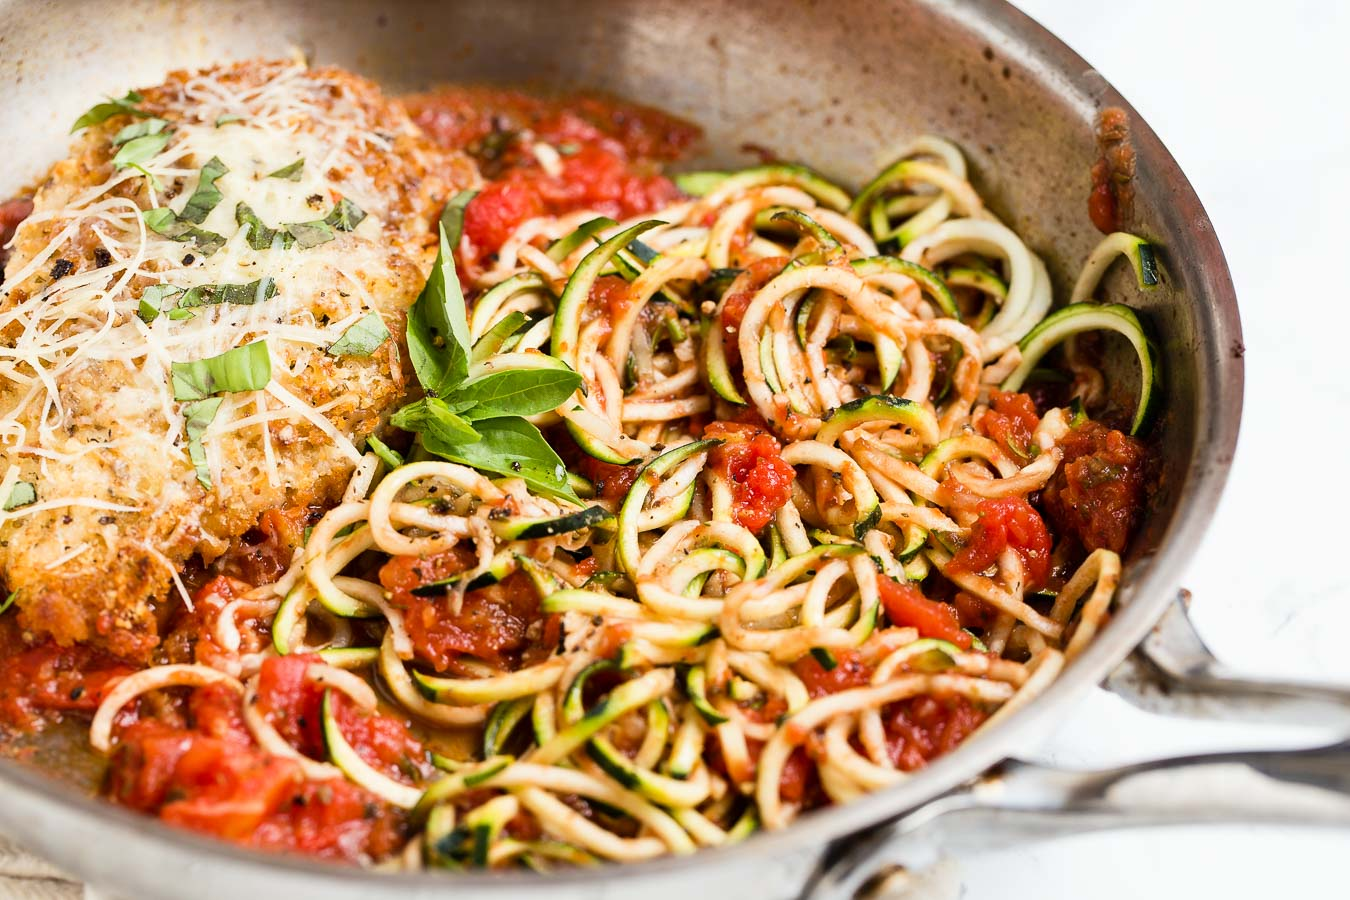 A frying pan with a cooked crispy chicken breast covered with herbs and parmesan cheese next to cooked tomatoes and zucchini noodles or zoodles